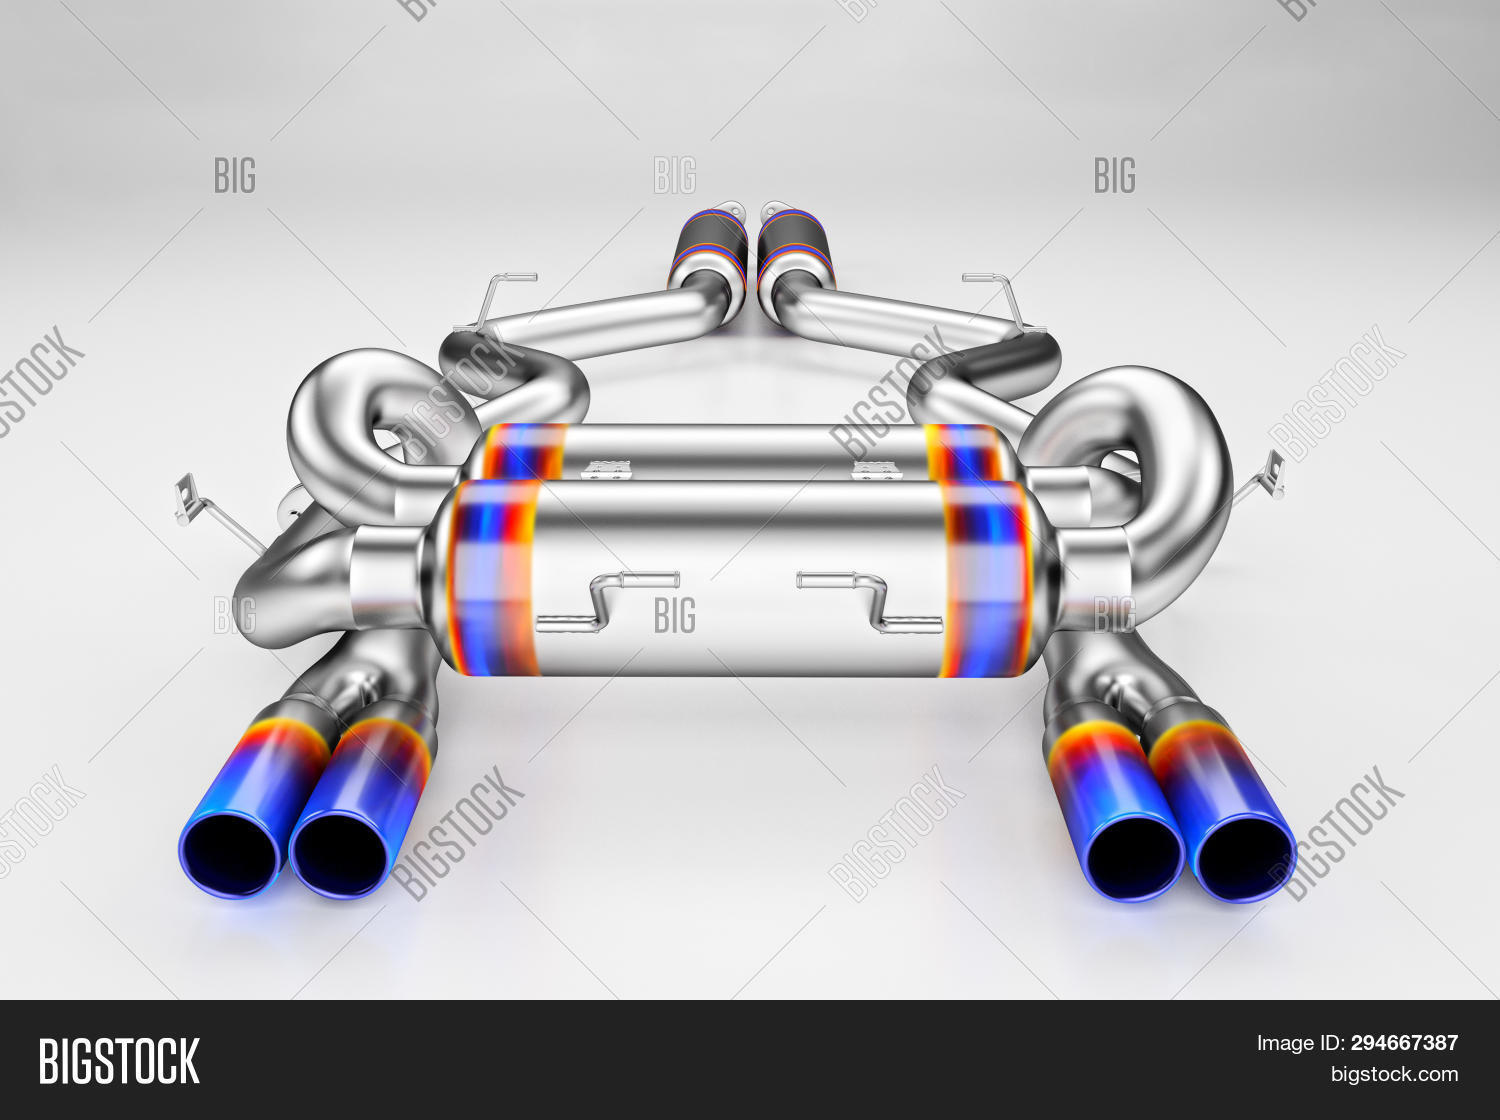 Tuning Exhaust System Image Photo Free Trial Bigstock